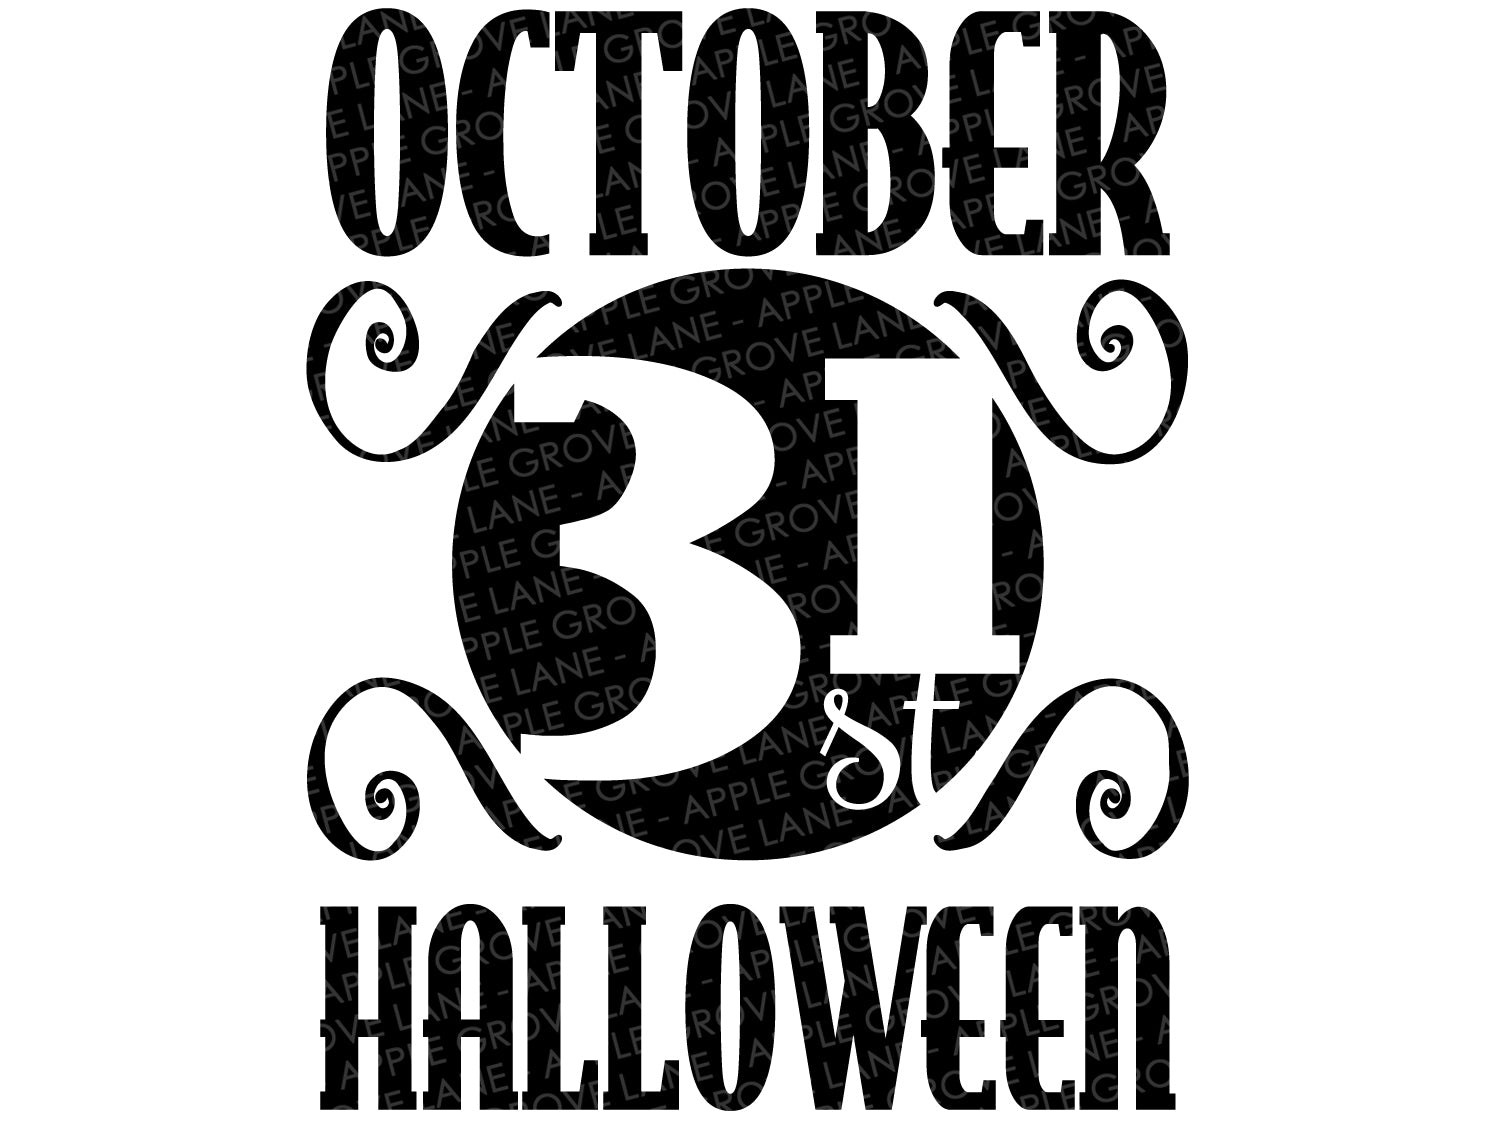 Halloween Sign Svg - October 31 Svg - Halloween Svg - October Svg - Fall Svg - Svg Eps Png Dxf